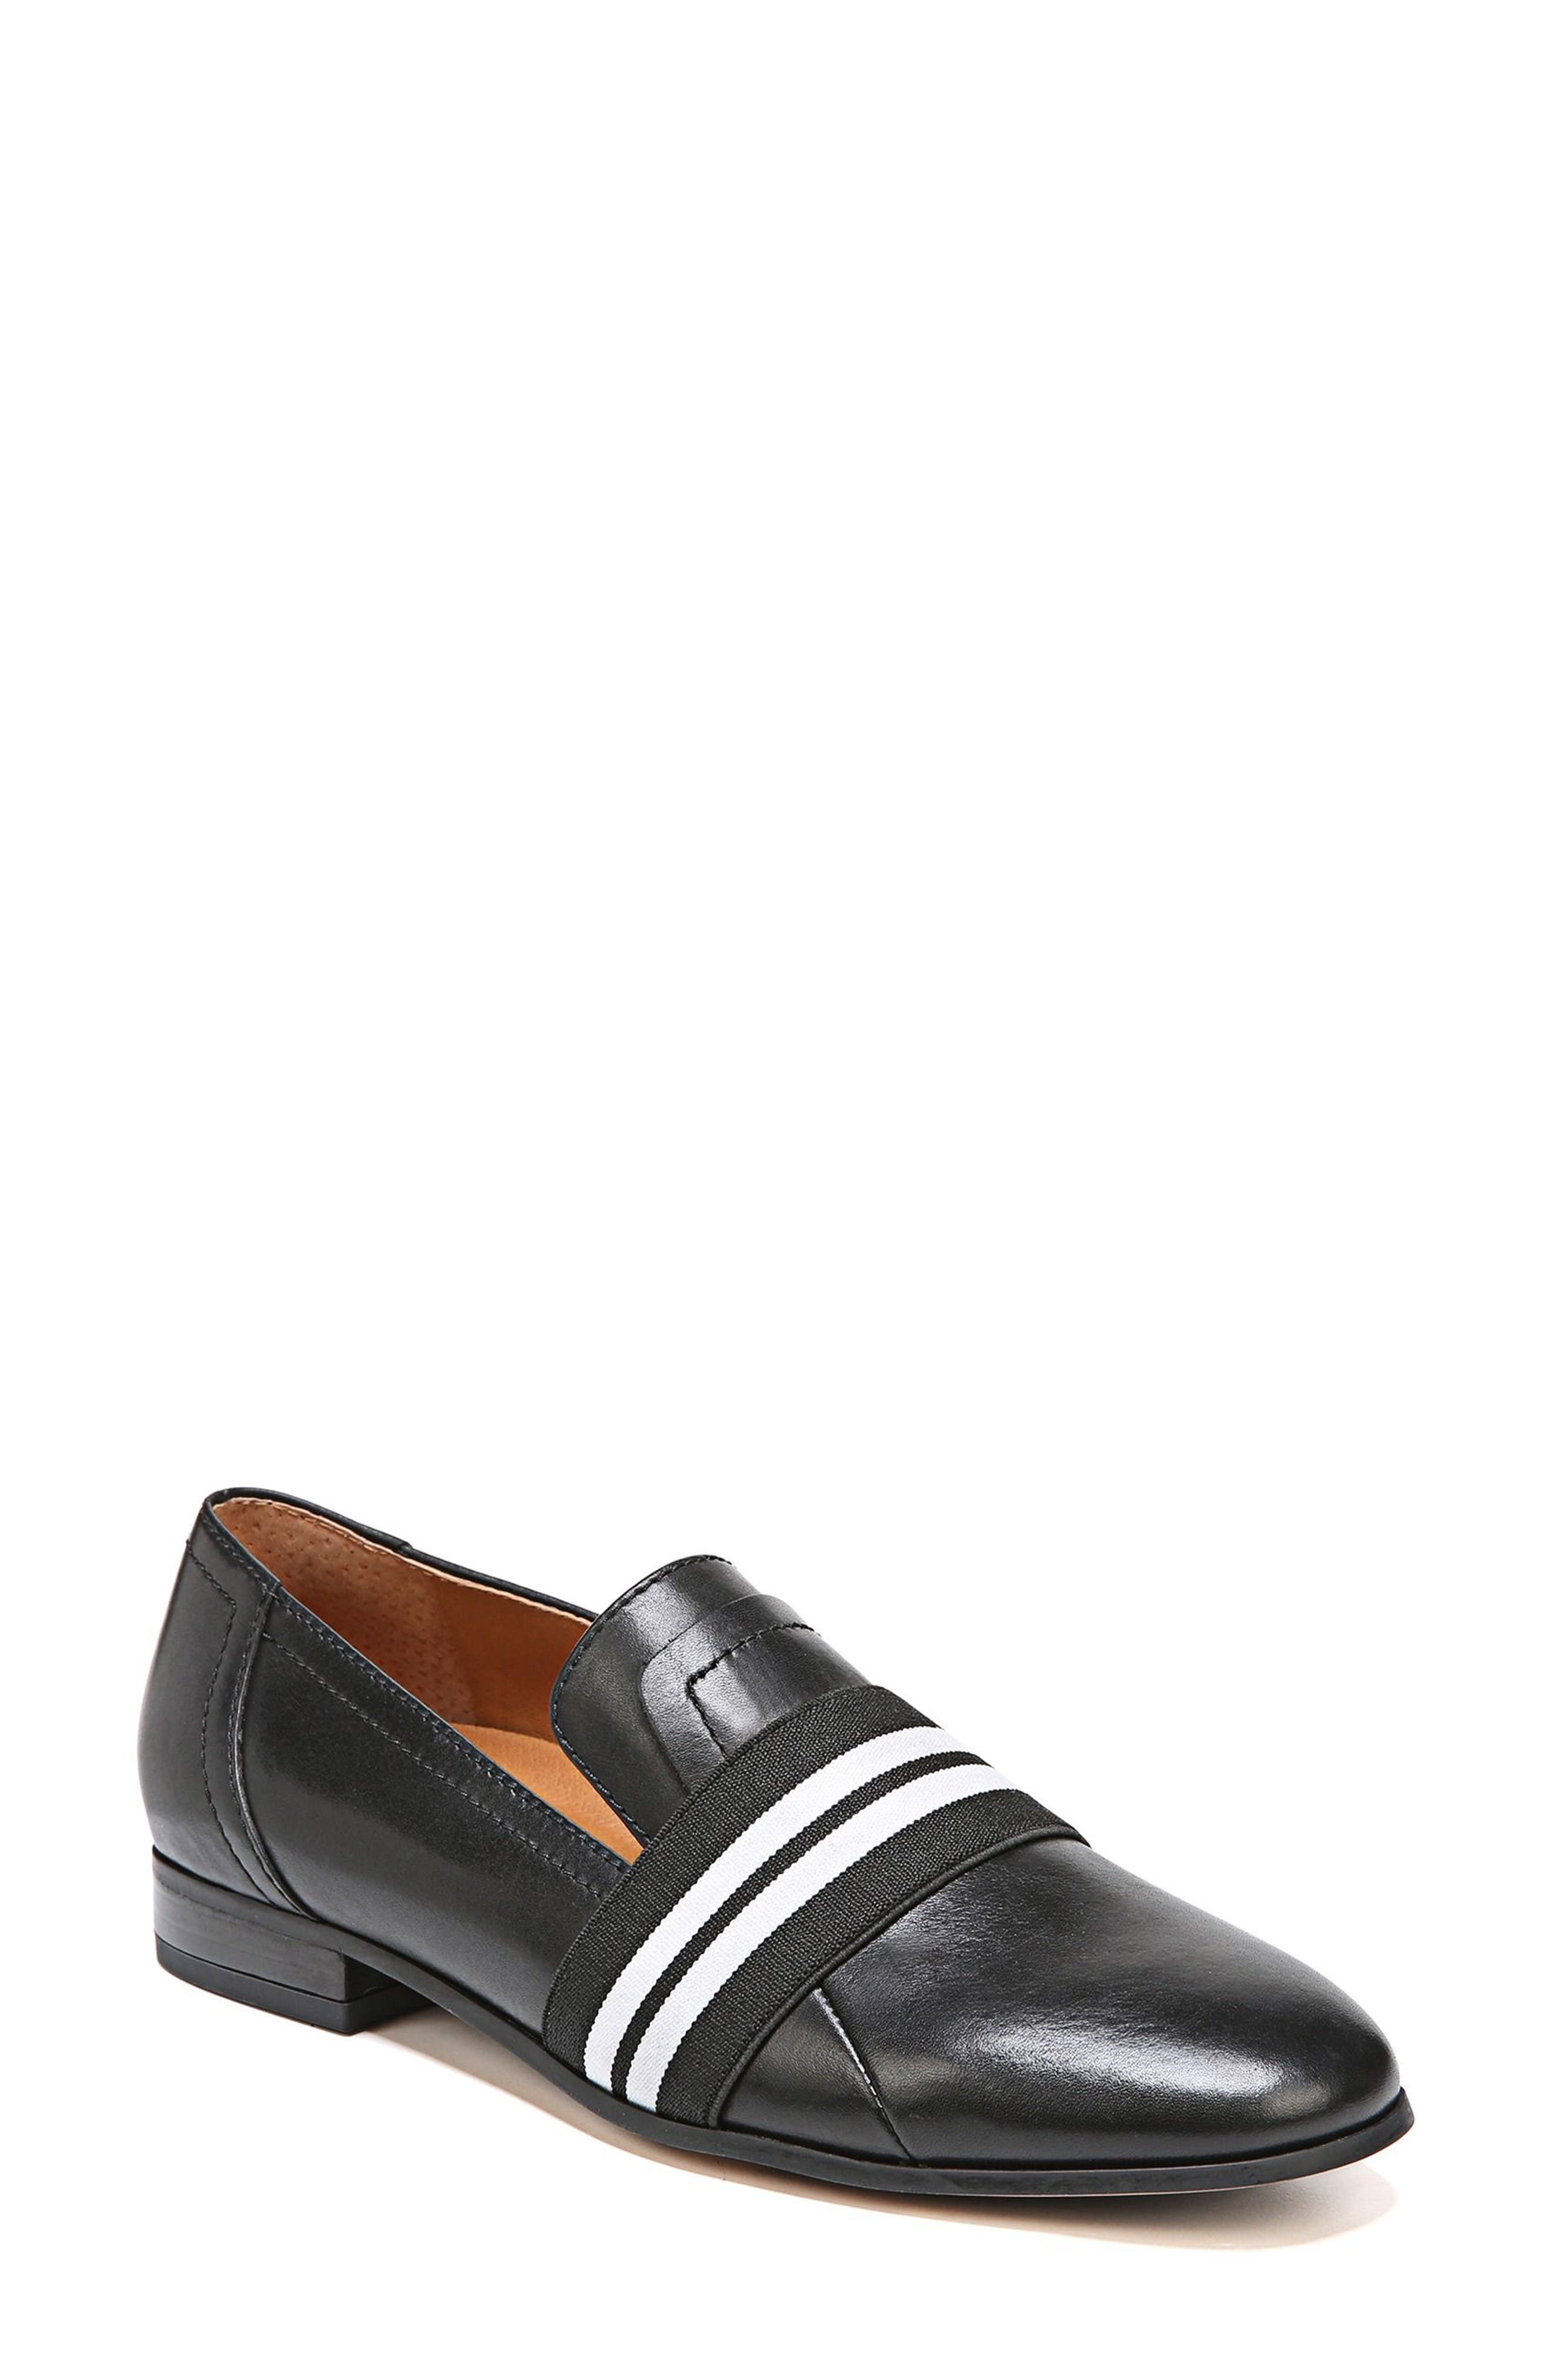 Odyssey Loafer,                             Main thumbnail 1, color,                             001